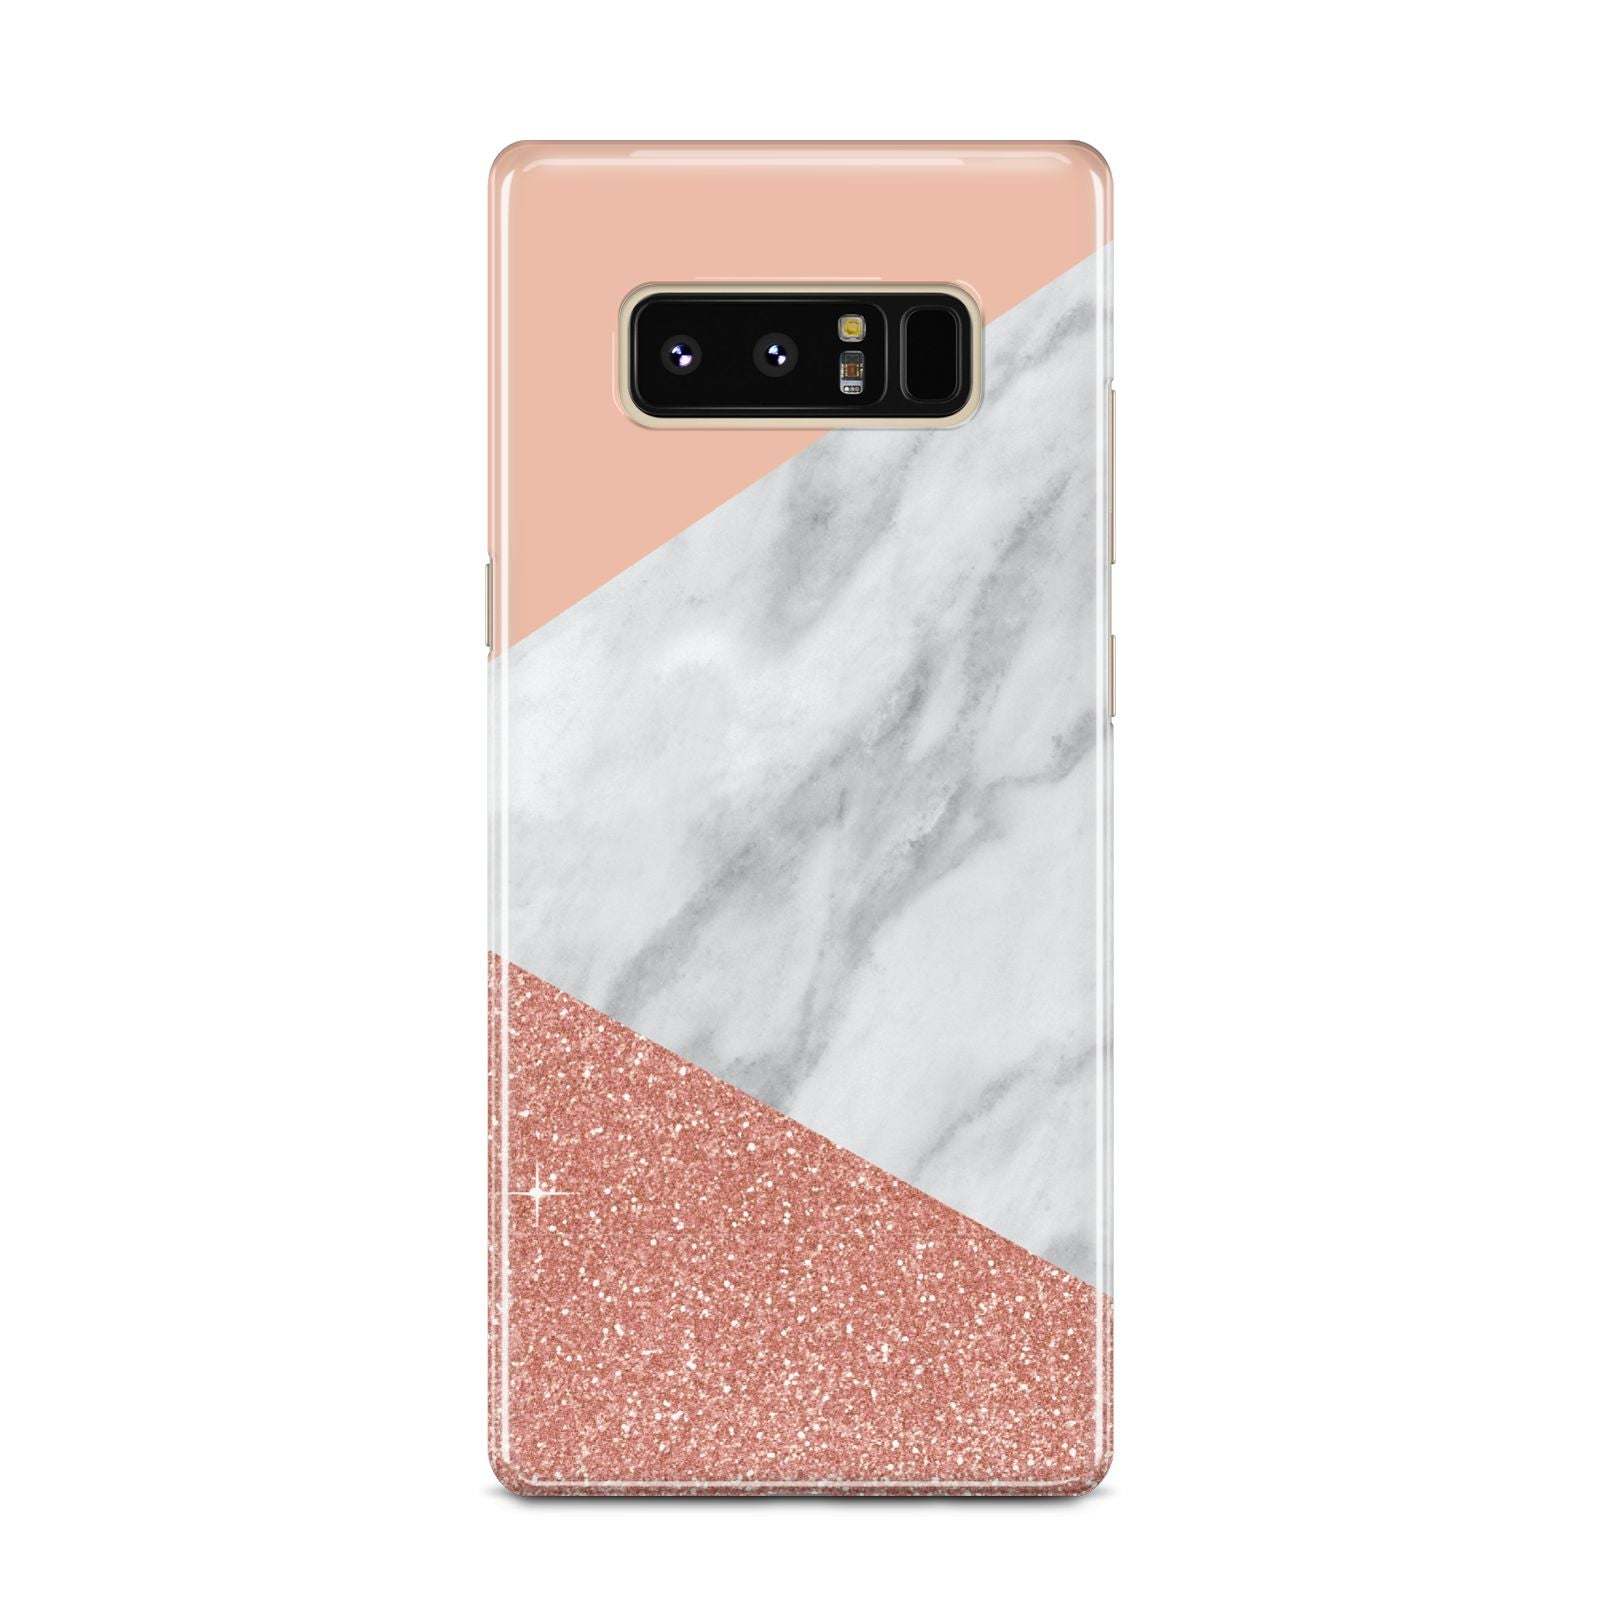 Marble White Rose Gold Samsung Galaxy Note 8 Case